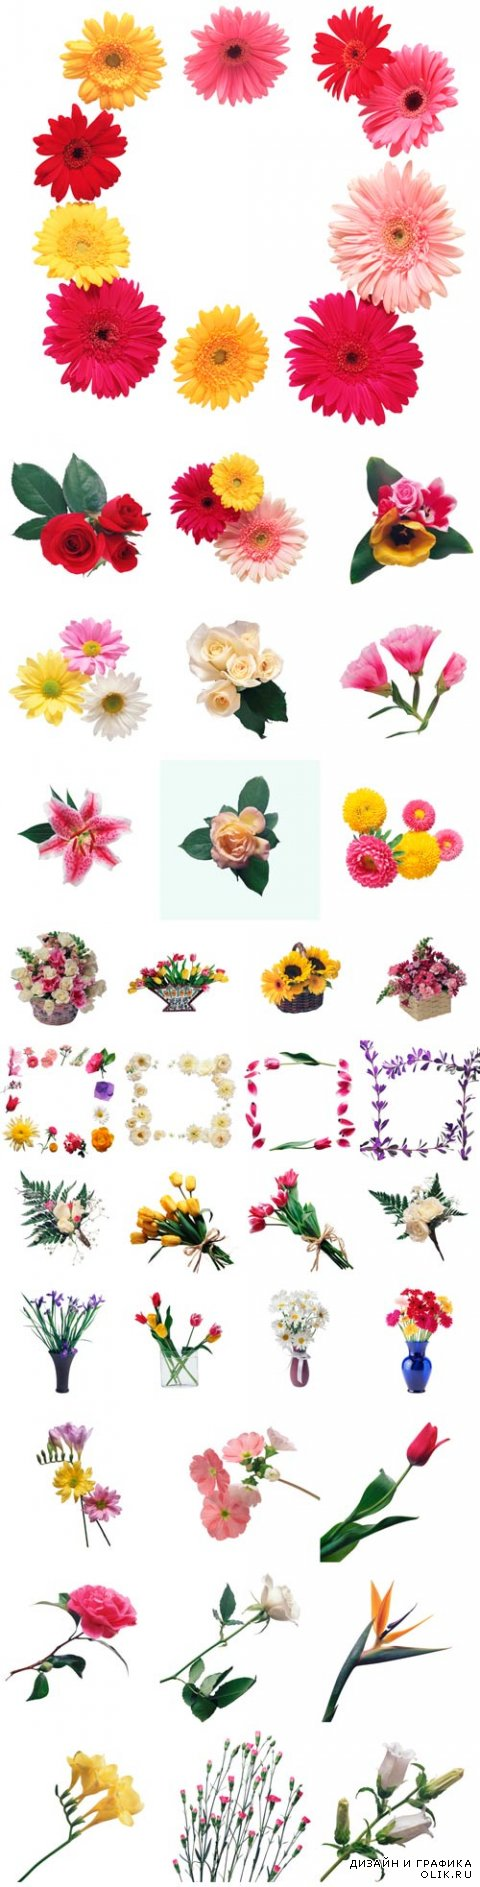 Different flowers on a white background